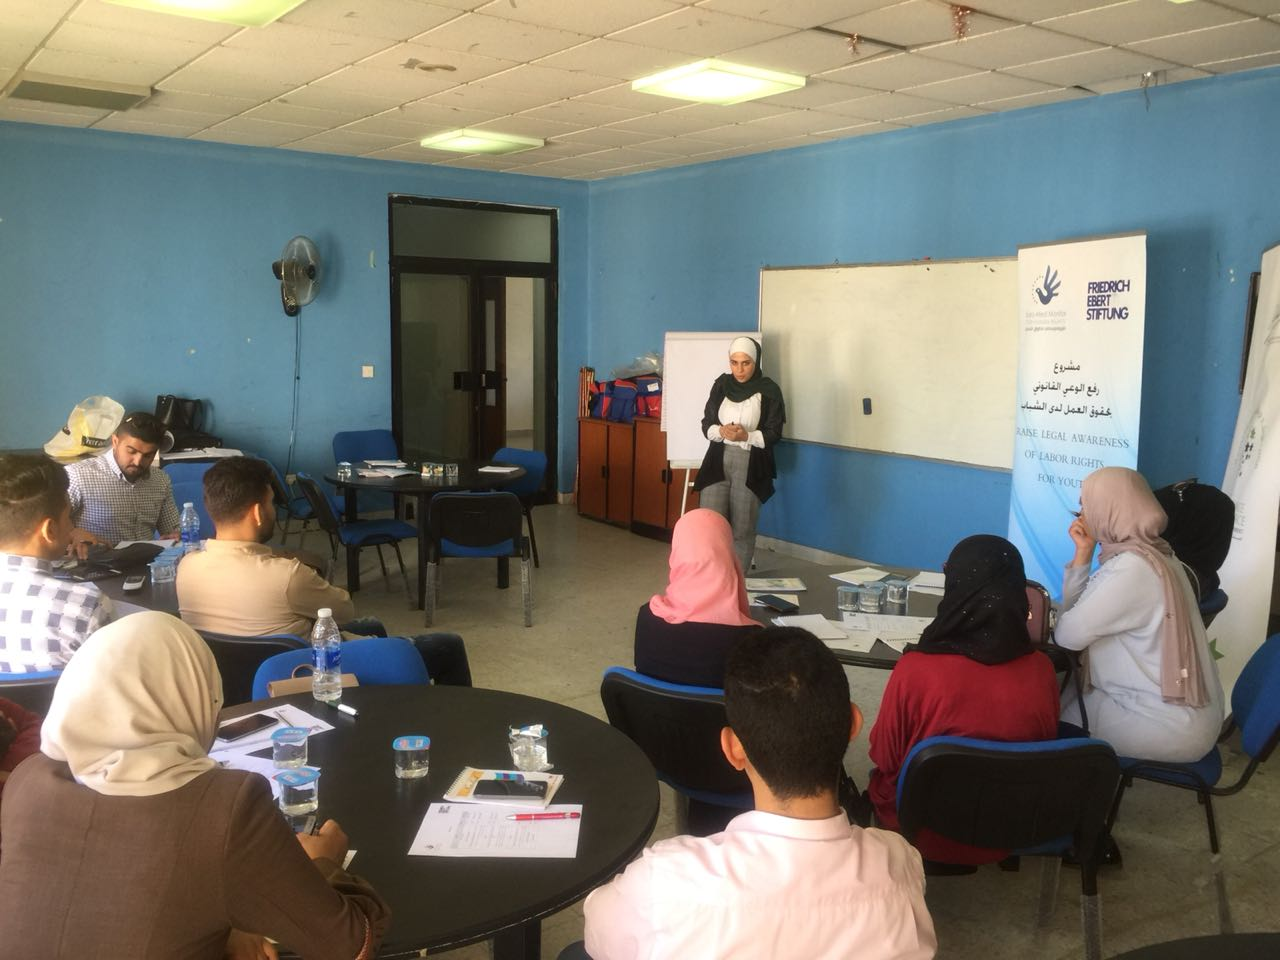 Jordan: In partnership with Friedrich Ebert, Euro-Med organizes training on labor rights